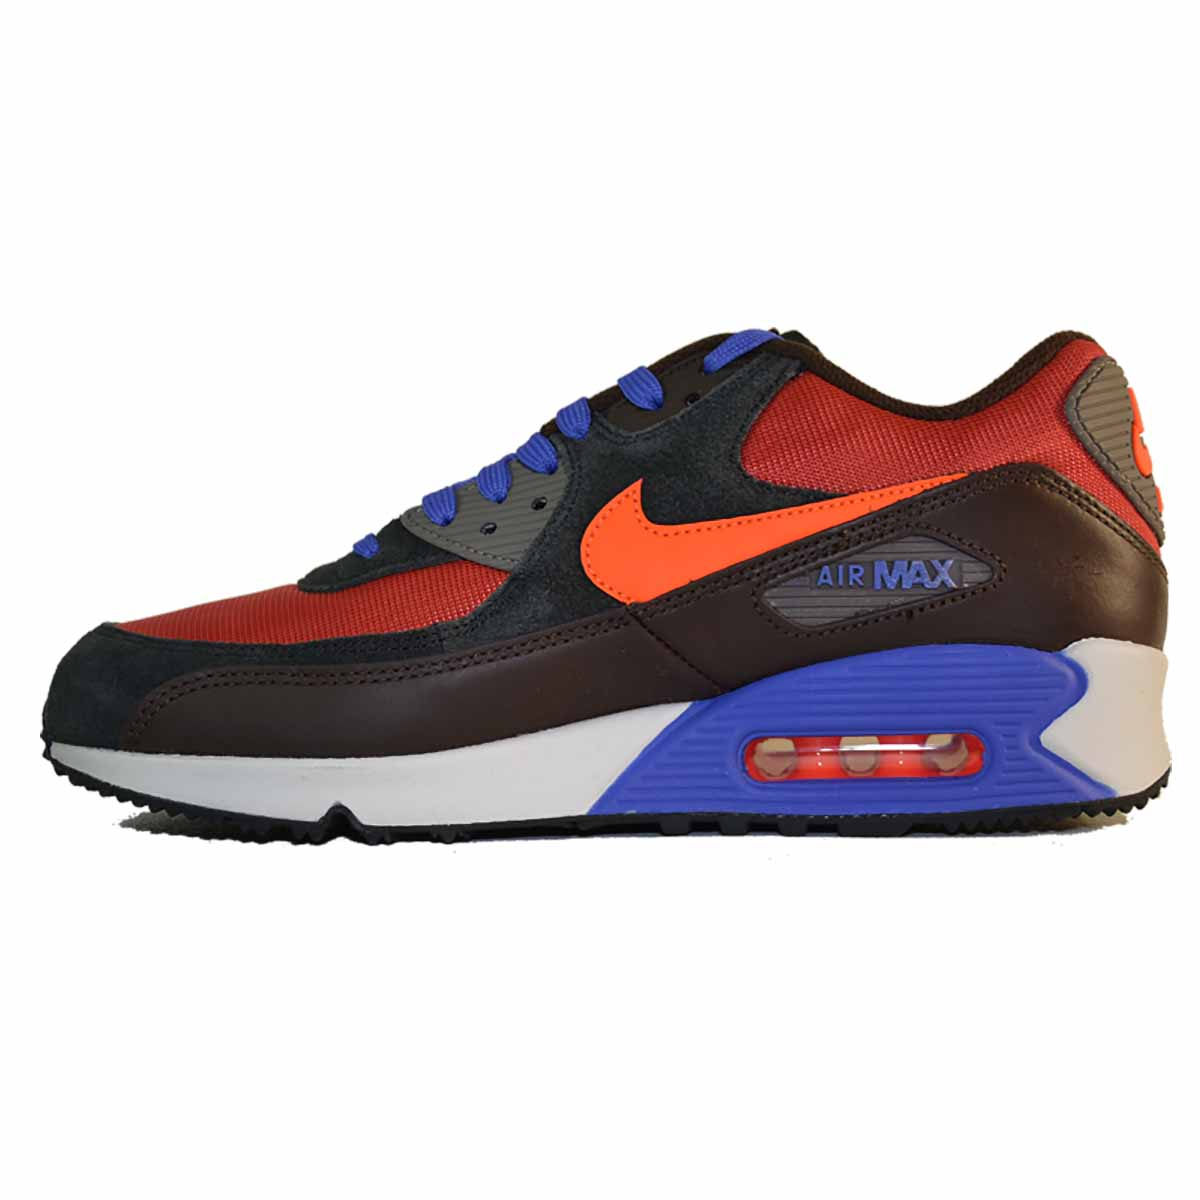 free shipping 629c1 70e0f Nike Air Max 90 Trainers Winter Prm Mens Sneakers Shoes - MyCraze